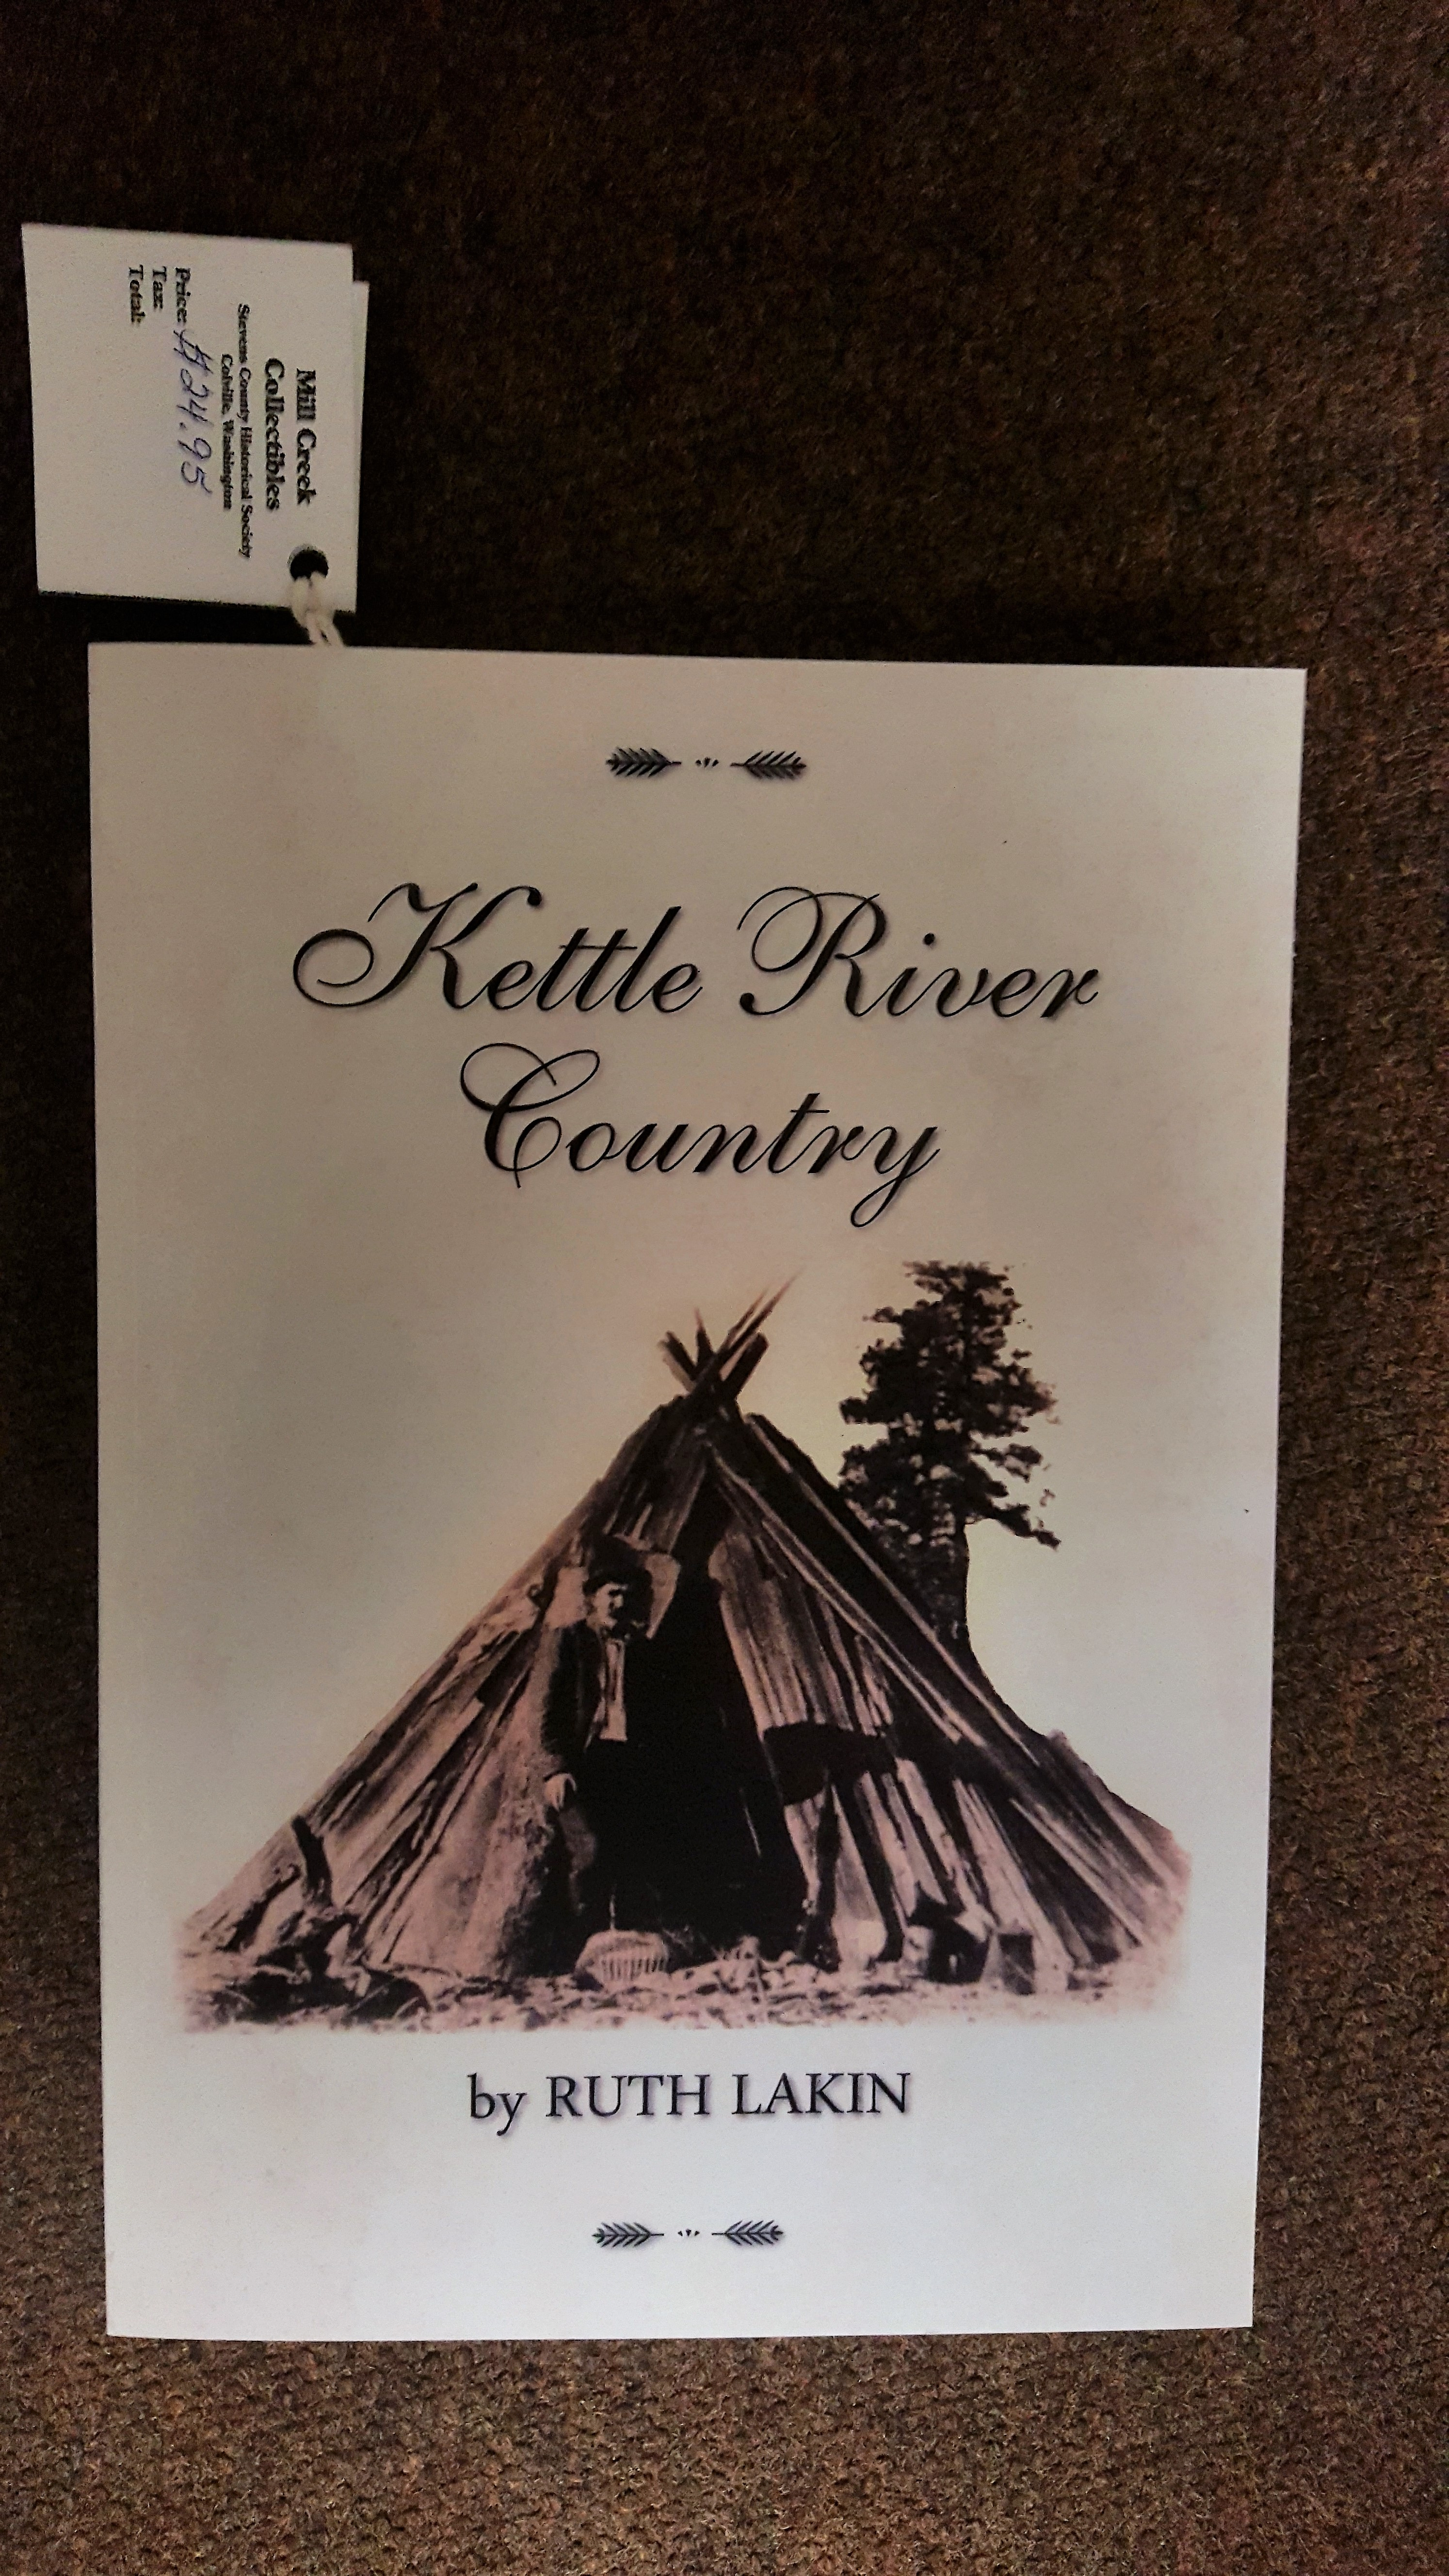 kettle river personals Willow river dating: browse willow river, mn singles & personals search for singles in the land of 10,000 lakes we have thousands of online personal ads in minnesota.